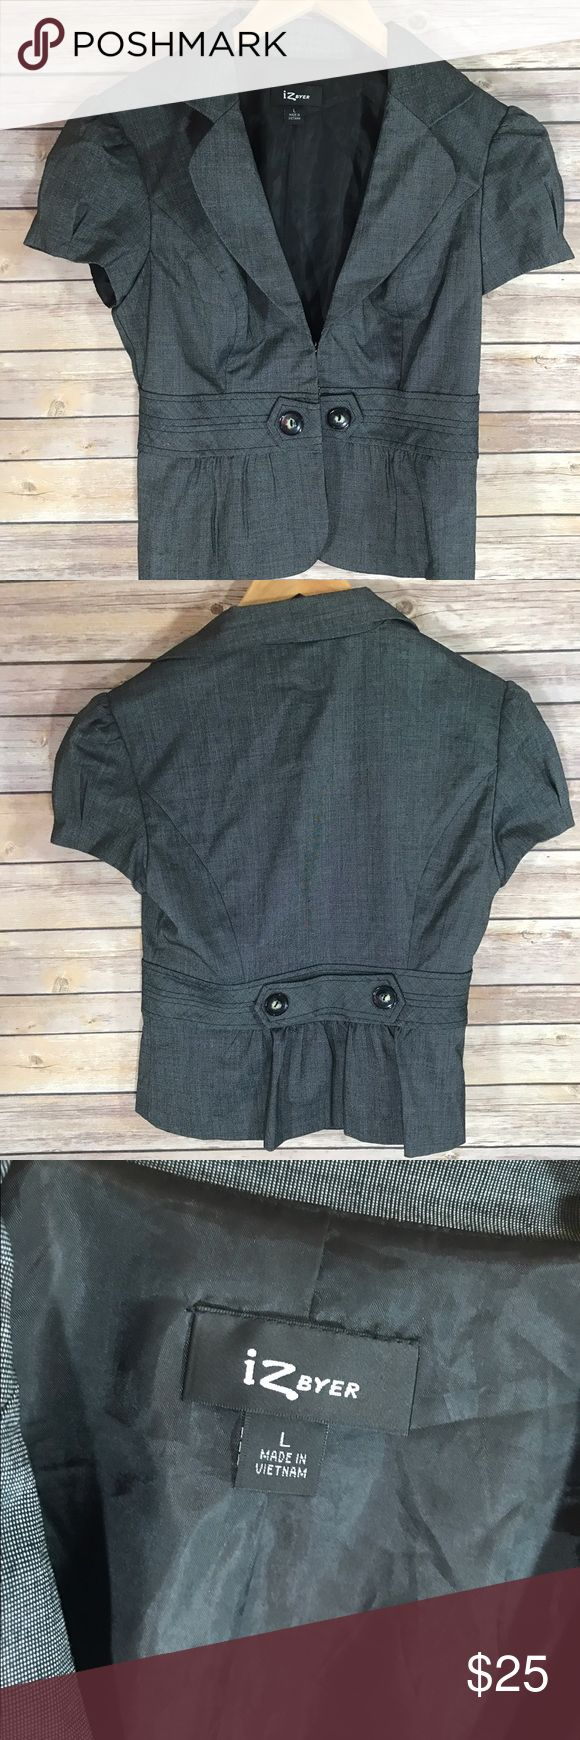 Gray Dress Jacket Gray IZ Byer dress up vest for suit or similar. Size large. Clasps shut, buttons for looks. Purchased from Kohls. Goes great with dress slacks for work, church, weddings, etc. Iz Byer Jackets & Coats Blazers